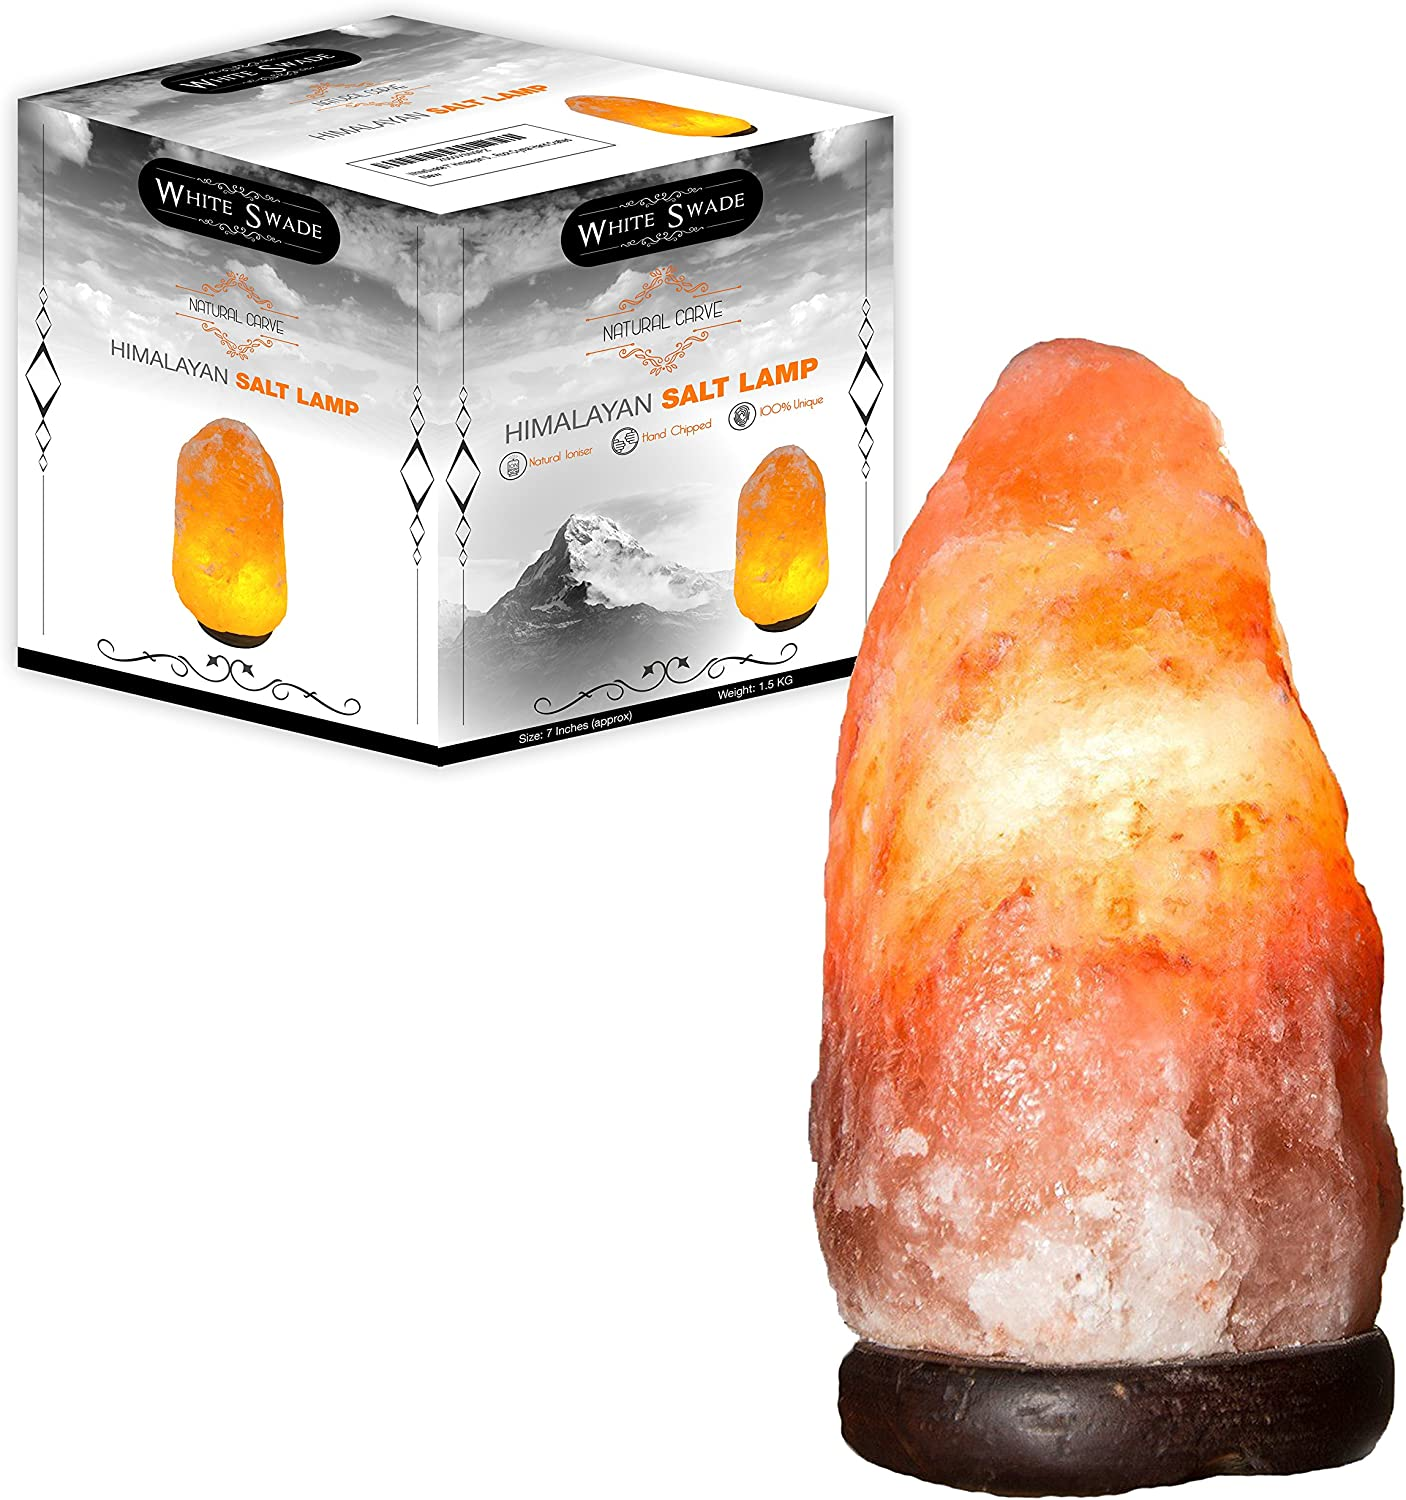 WhiteSwade Pink Crystal Himalayan Salt Lamp with UL Certified Dimmer Switch, Medium Size.Wood Base and 15W Bulb, 6 ft Cord. Rock Crystal Hand Crafted. Perfect Gift Idea. Popular Feng Shui Decor